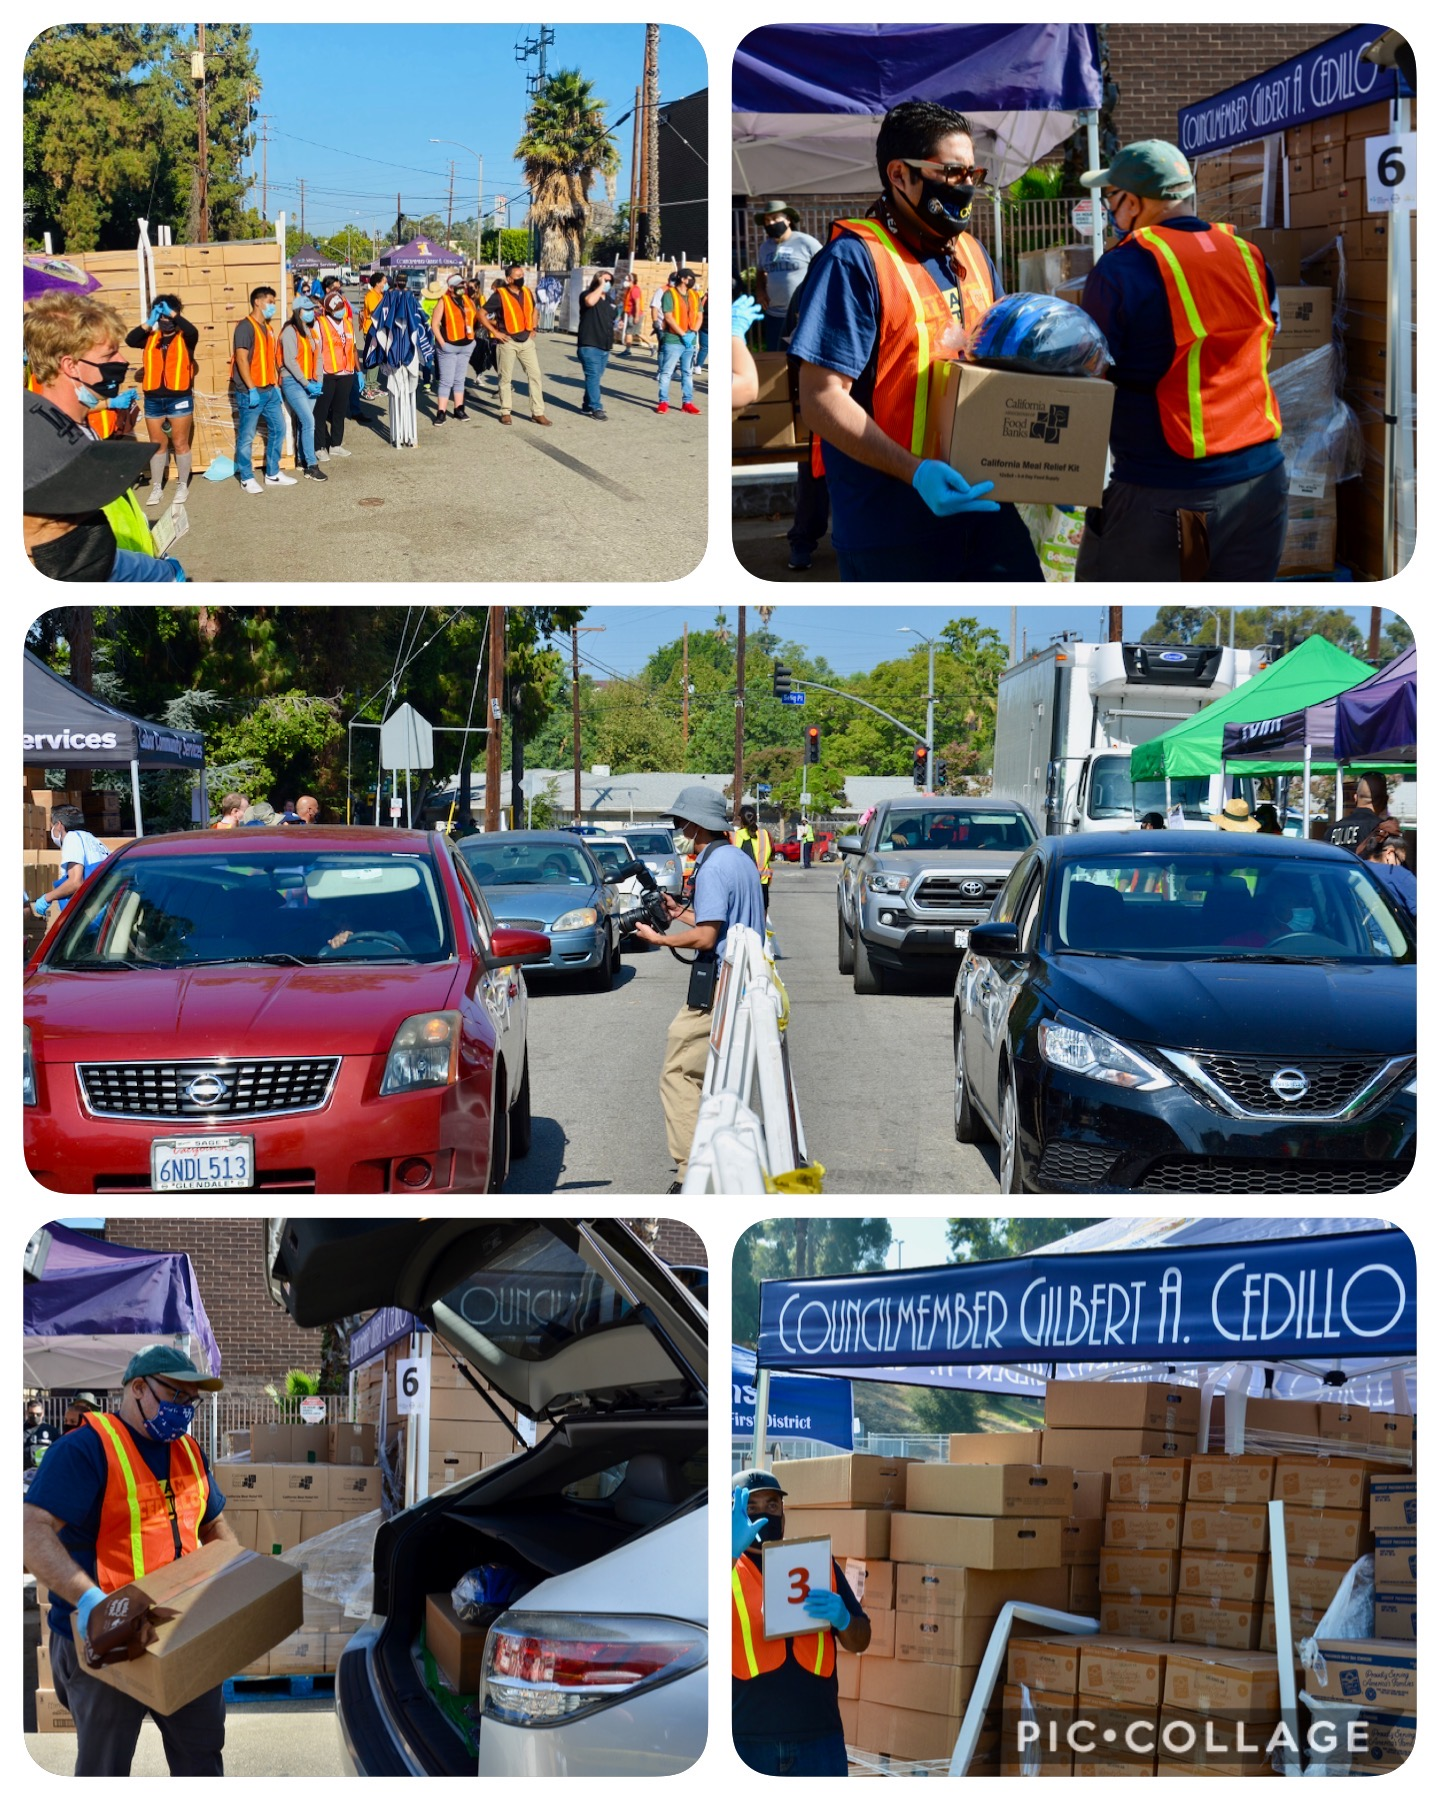 LA Regional Food Bank, LA County Federation of Labor, and Labor Community Services sponsored a food distribution at Lincoln Park 8-29-2020 COLLAGE